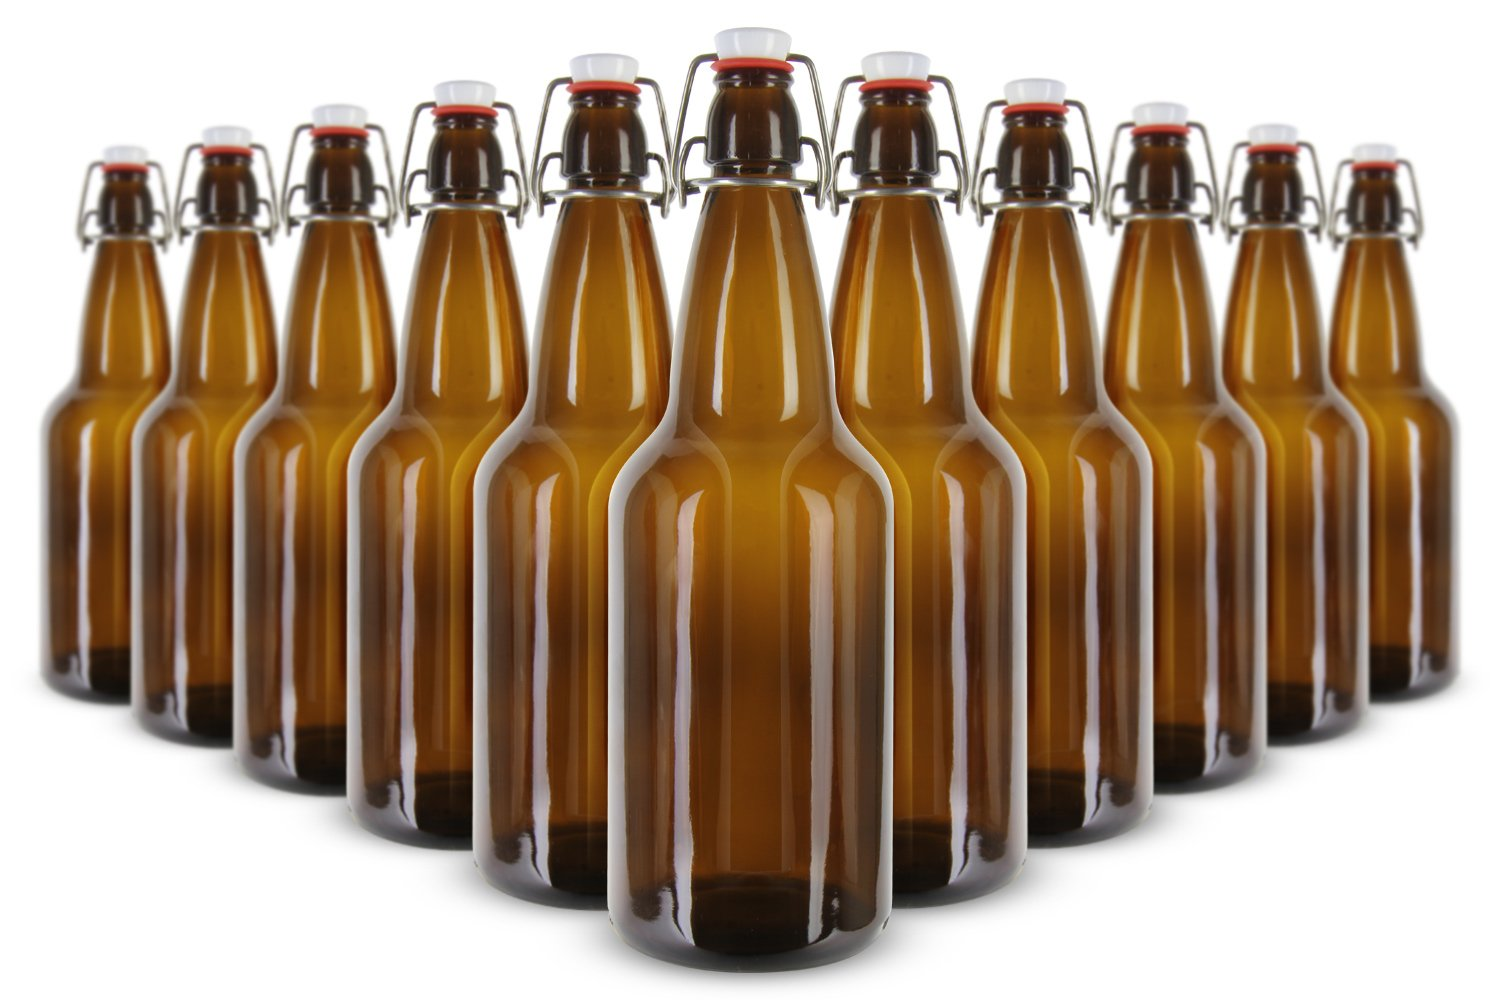 Kegco 1 Liter Flip-Top Home Brew Beer Bottles - Amber (Case of 12) FP-1000ASTB